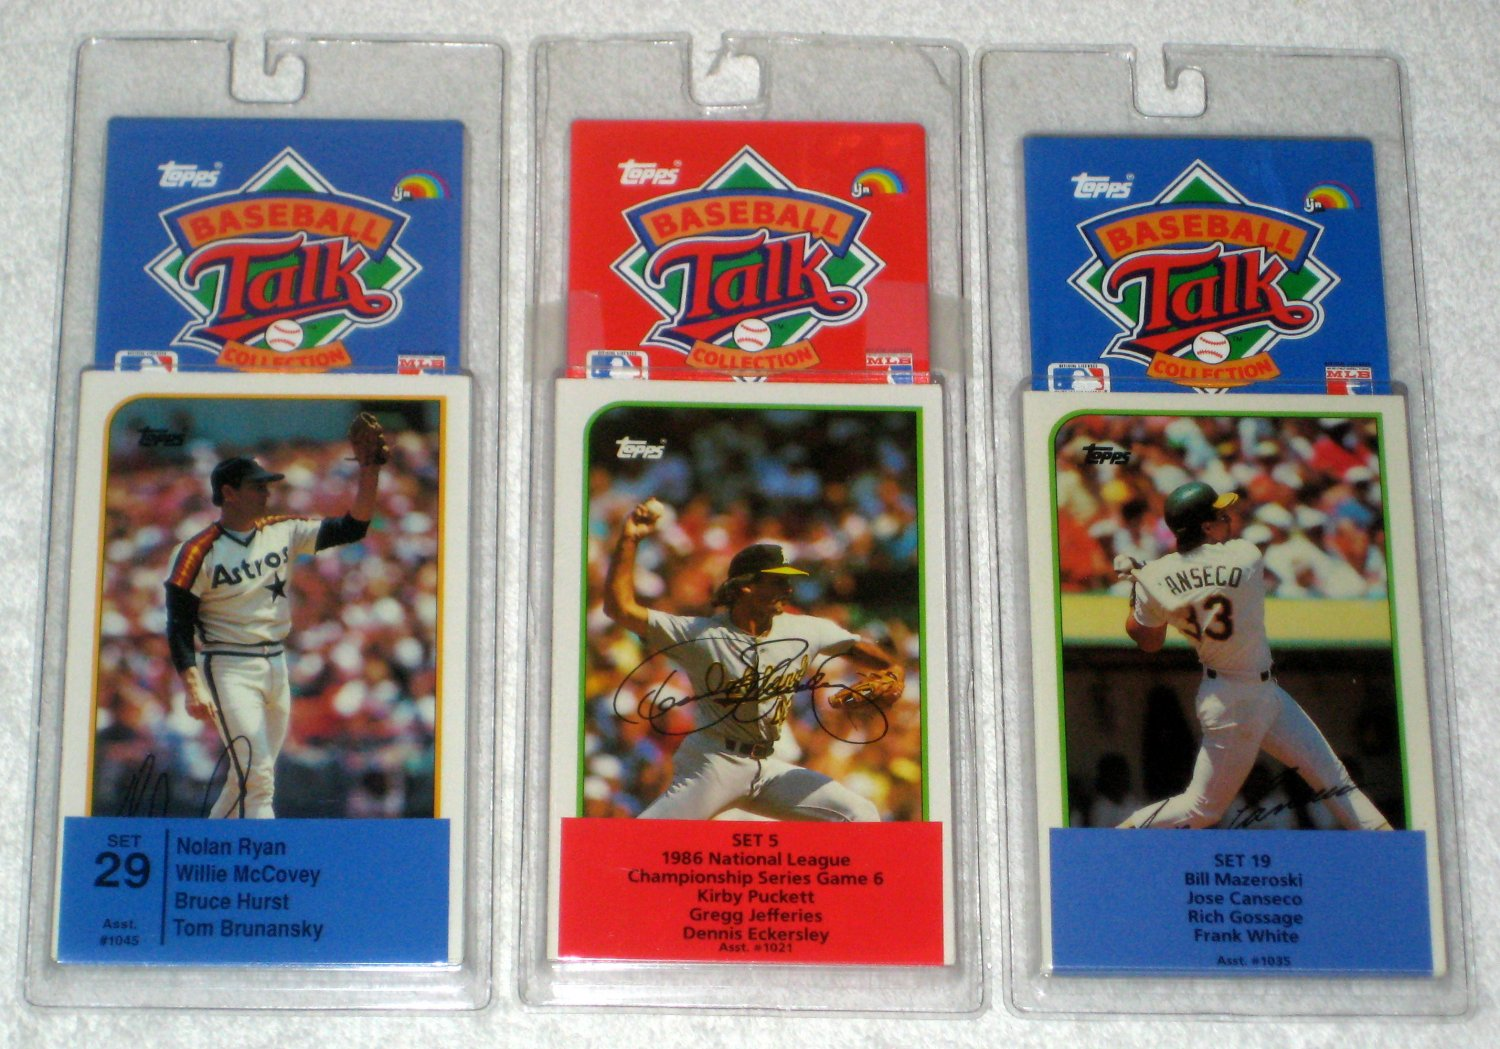 Topps Baseball Talk Collection SoundCards Cards Lot Sets #5 #19 #29 Ryan Puckett Canseco LJN 1989